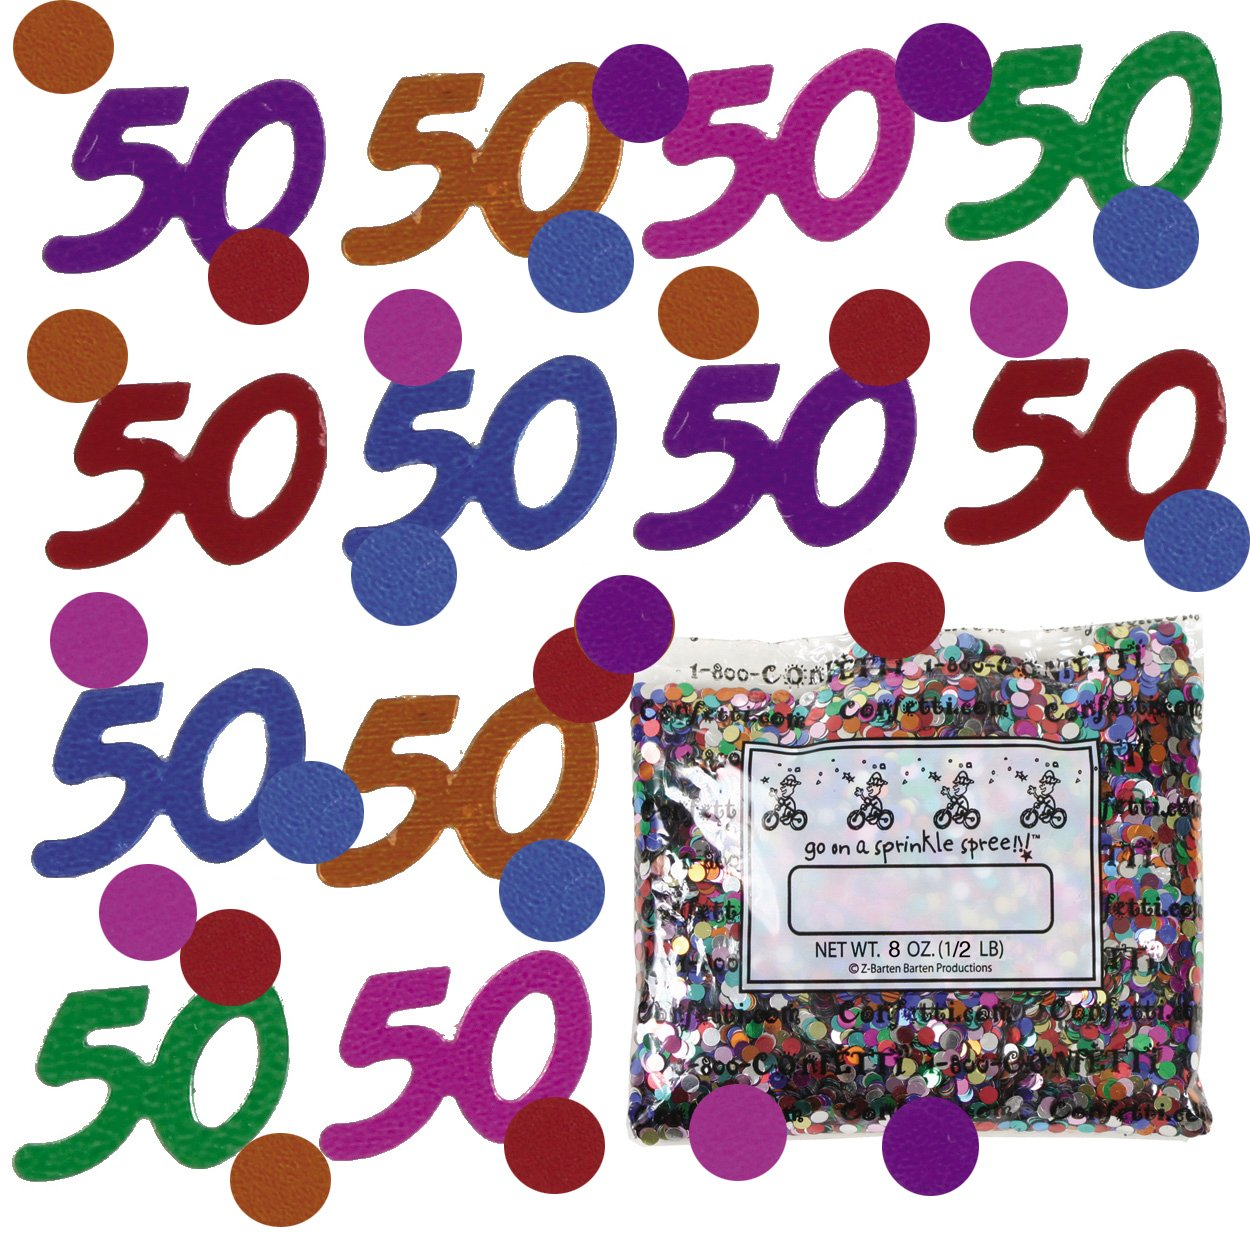 Confetti Mix - 50s & Circles Multicolors - One Pound - Free Priority Mail- (9004)